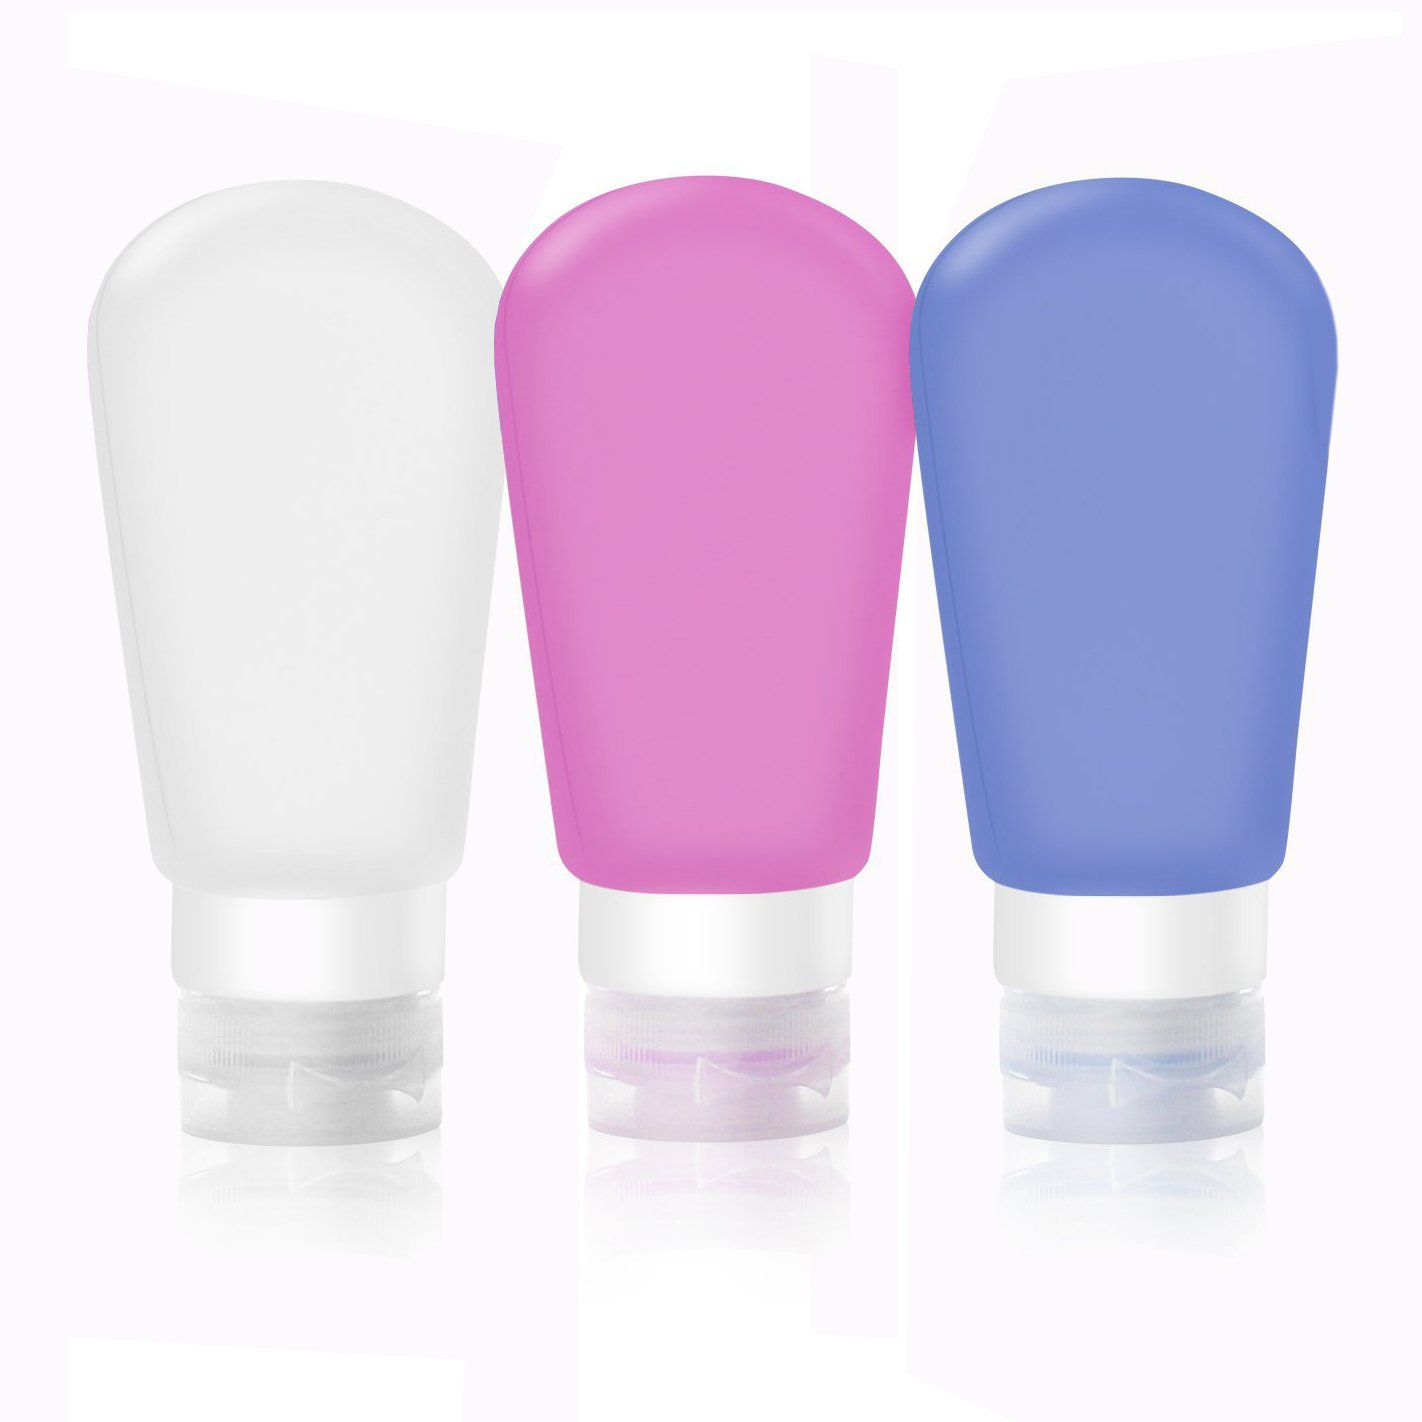 Cisixin Travel Bottles Set with Leak Proof Silicone Bottles TSA Approved - Squeezable & Refillable Travel Containers for Shampoo, 3 oz, Set of 3